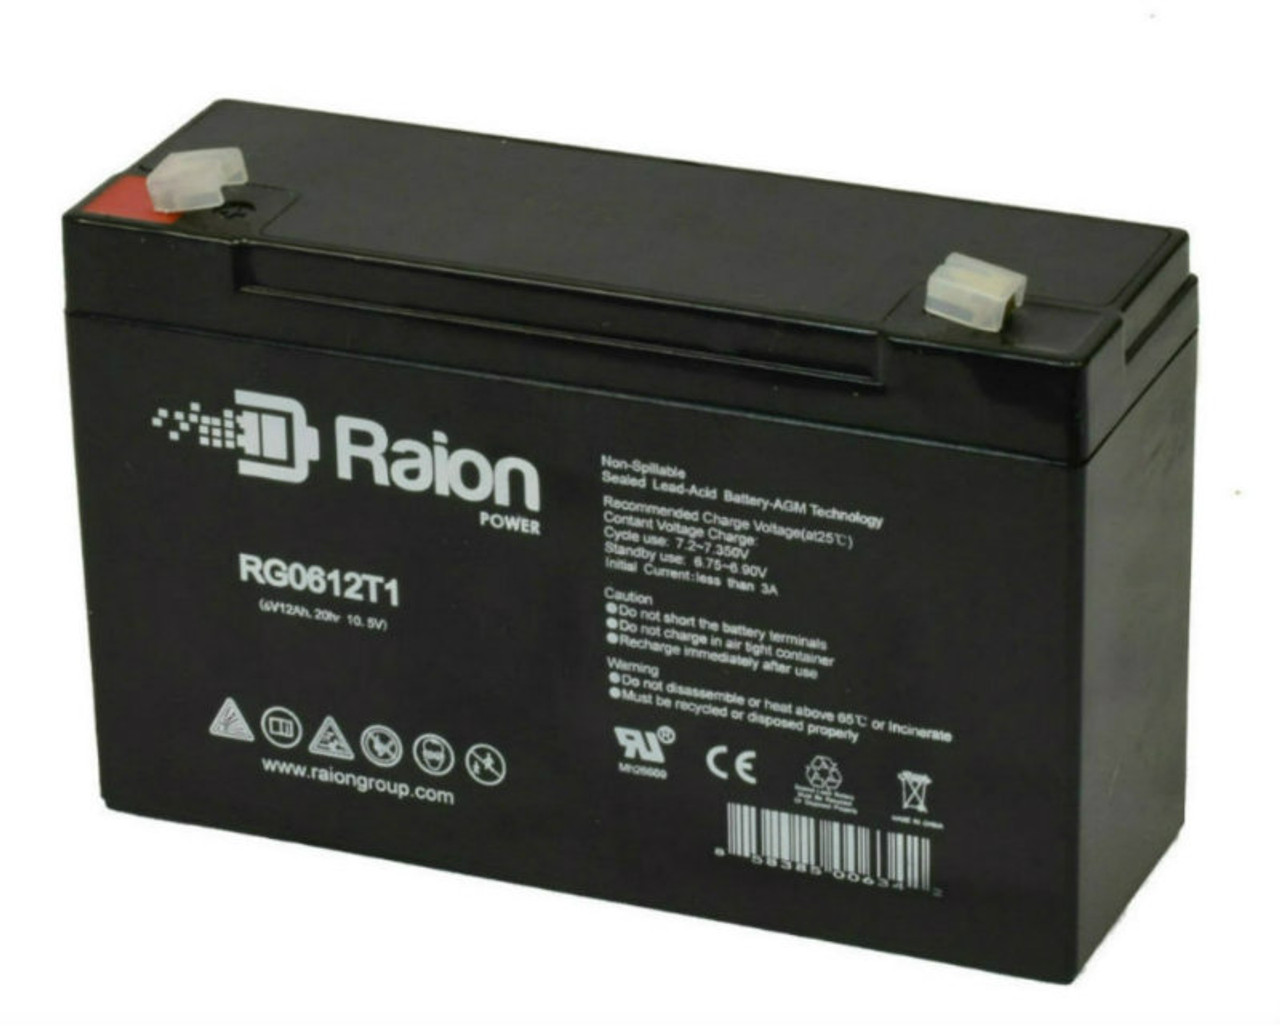 Raion Power RG06120T1 Replacement Battery Pack for Sure-Lites 12XR410 emergency light